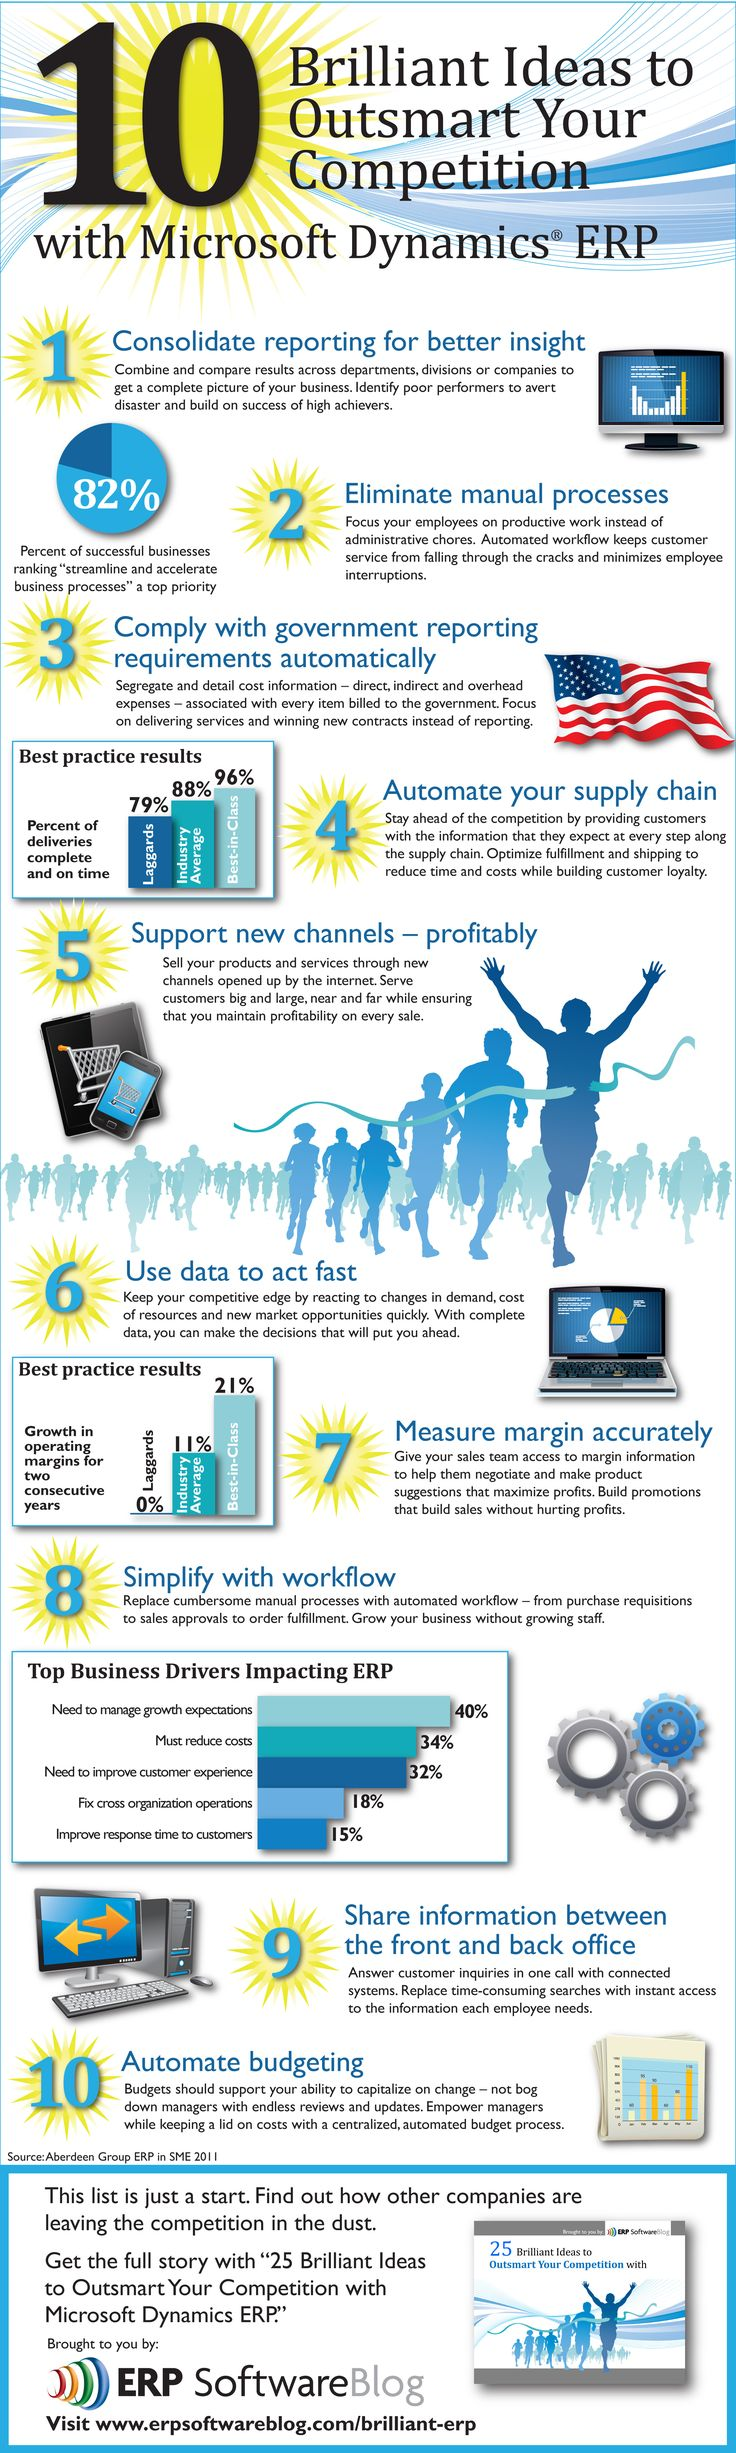 10 Brilliant Ideas to Outsmart Your Competition with Microsoft Dynamics ERP